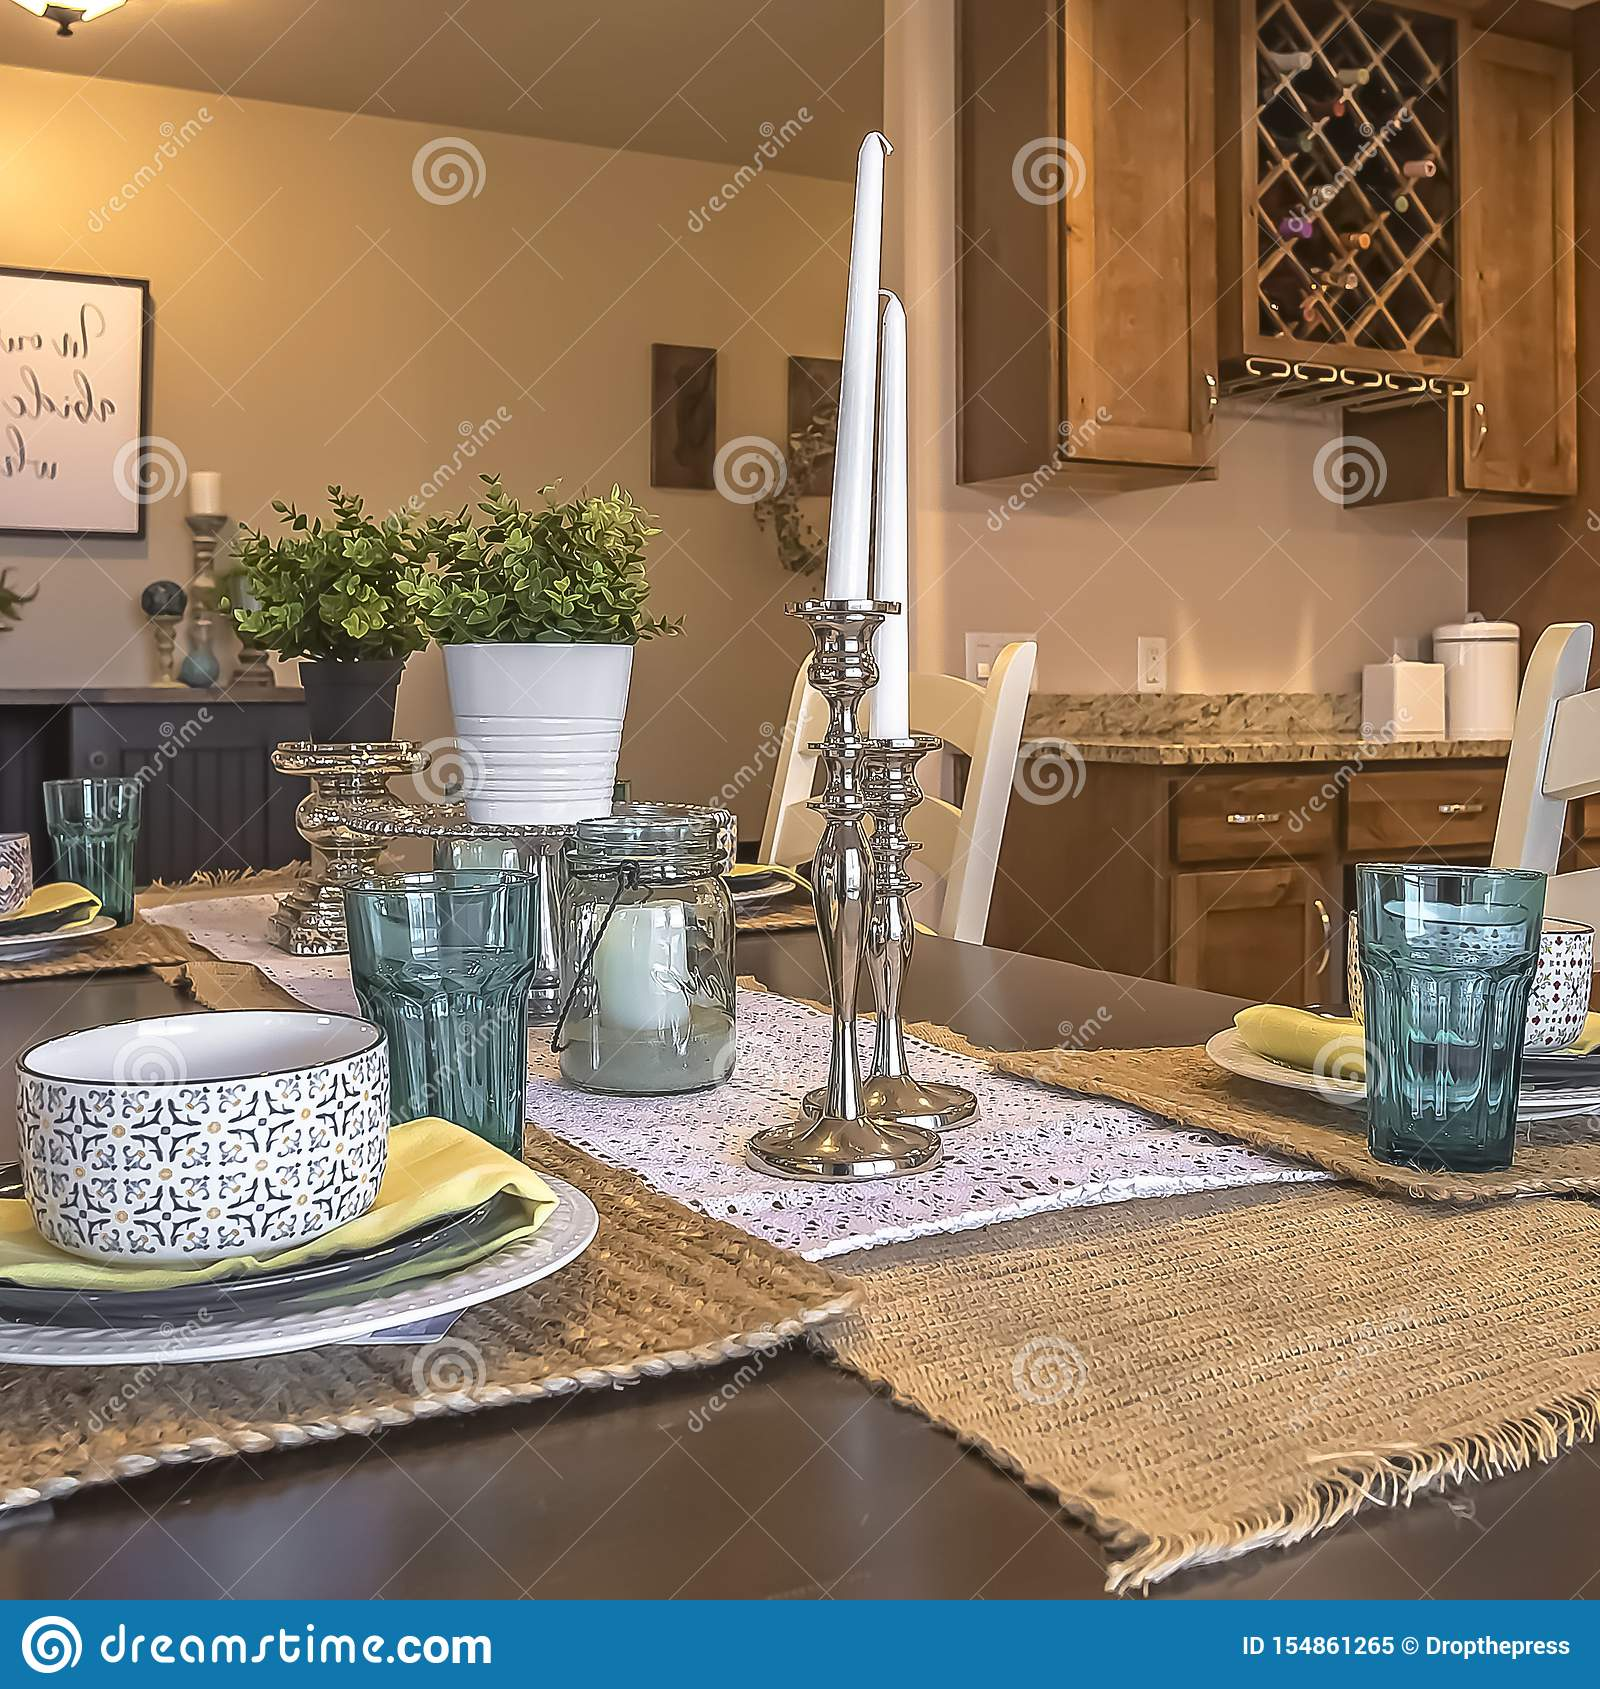 Swell Square White Chairs Around A Brown Dining Table With Hemp Lamtechconsult Wood Chair Design Ideas Lamtechconsultcom